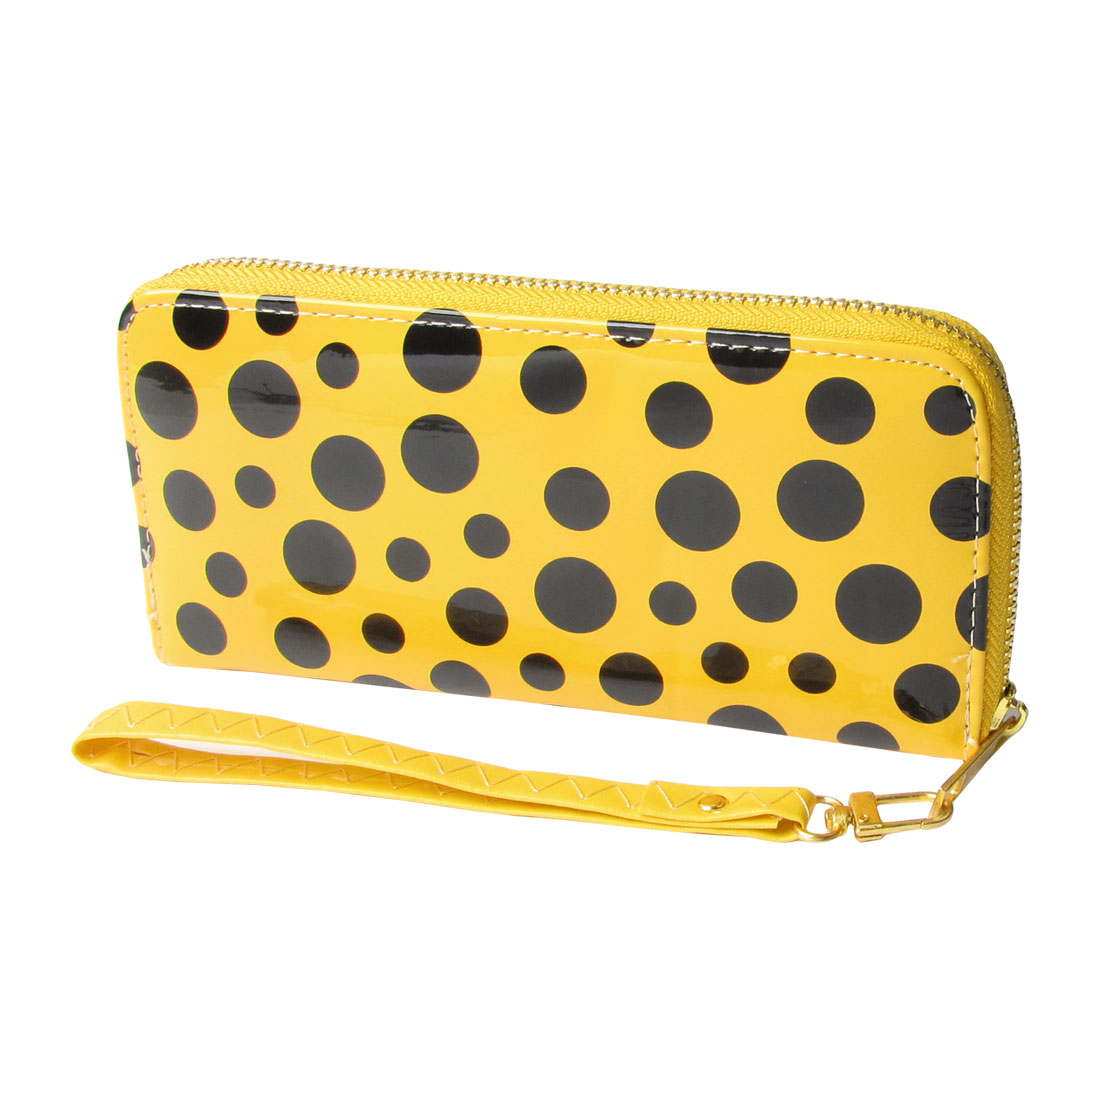 Black Dot Print Pattern PU Leather Zipper Closure Wallet Yellow for Lady